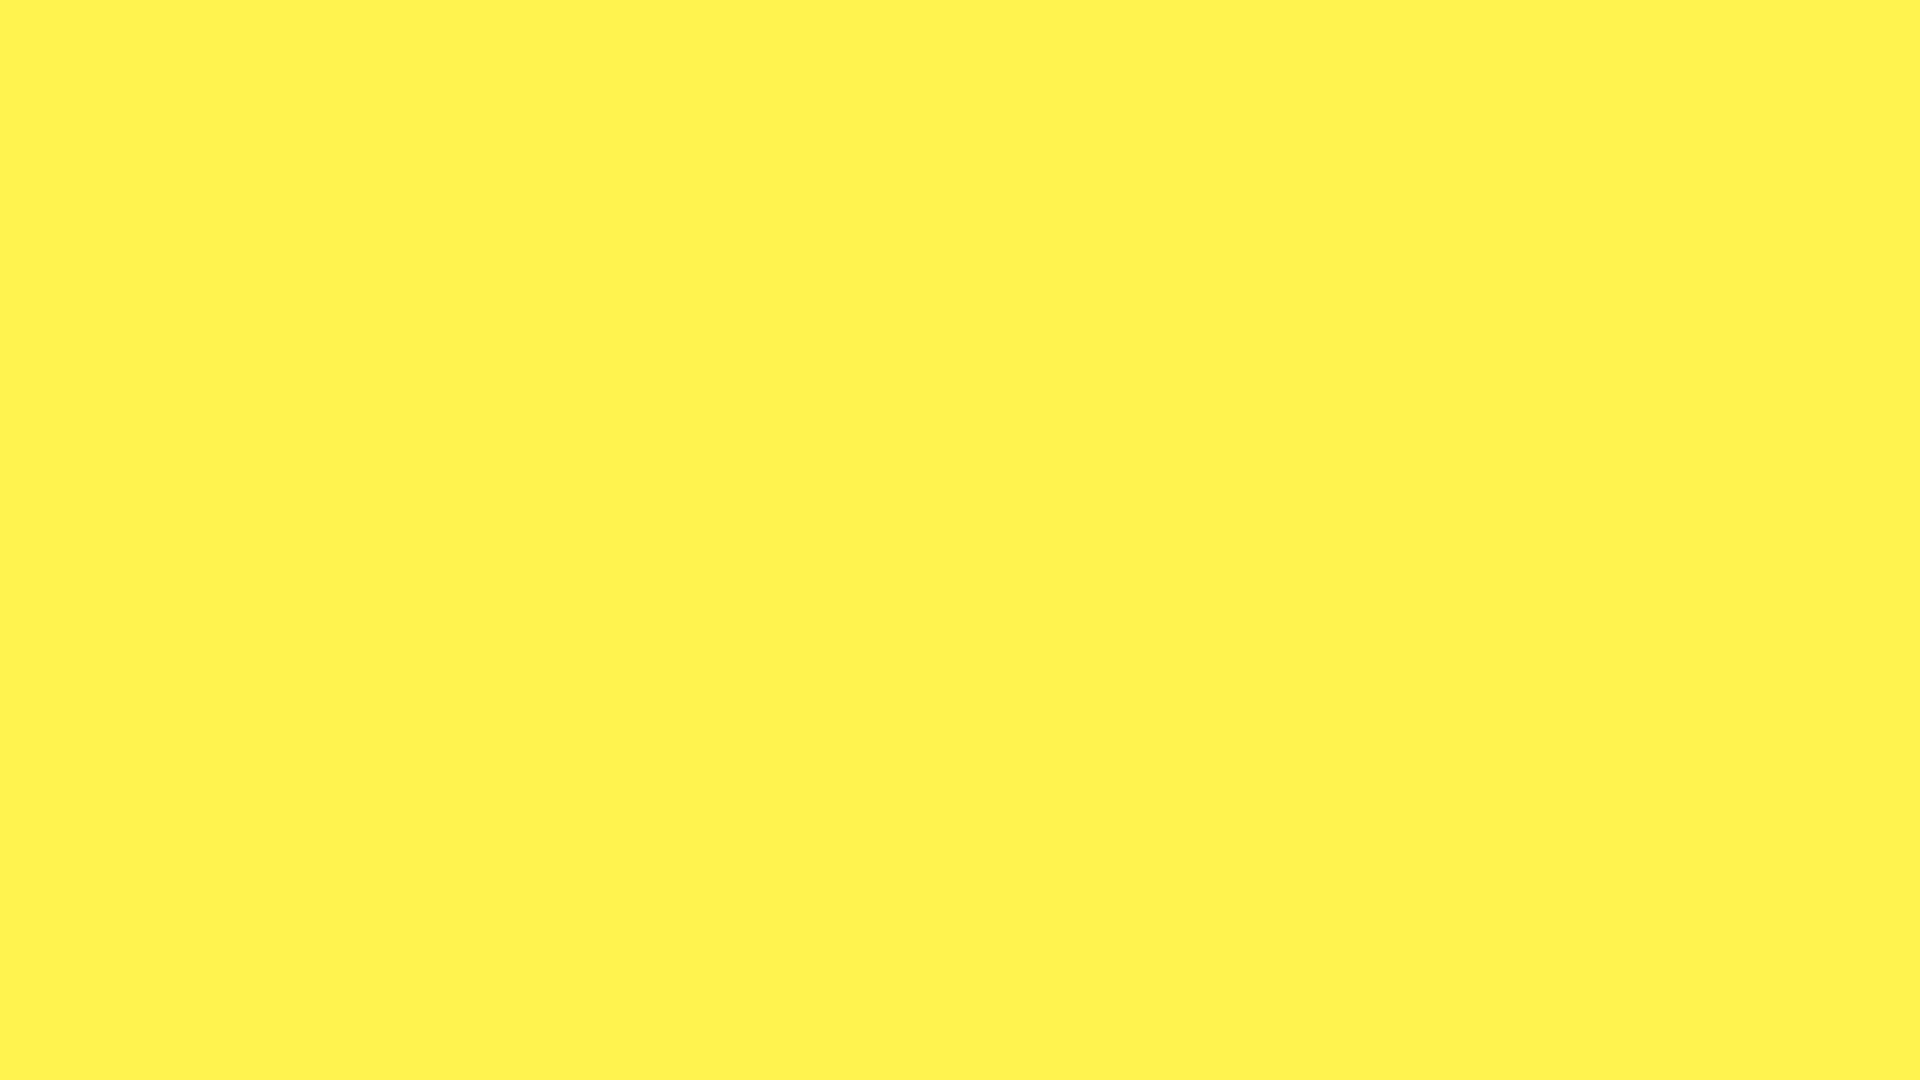 1920x1080 Lemon Yellow Solid Color Background